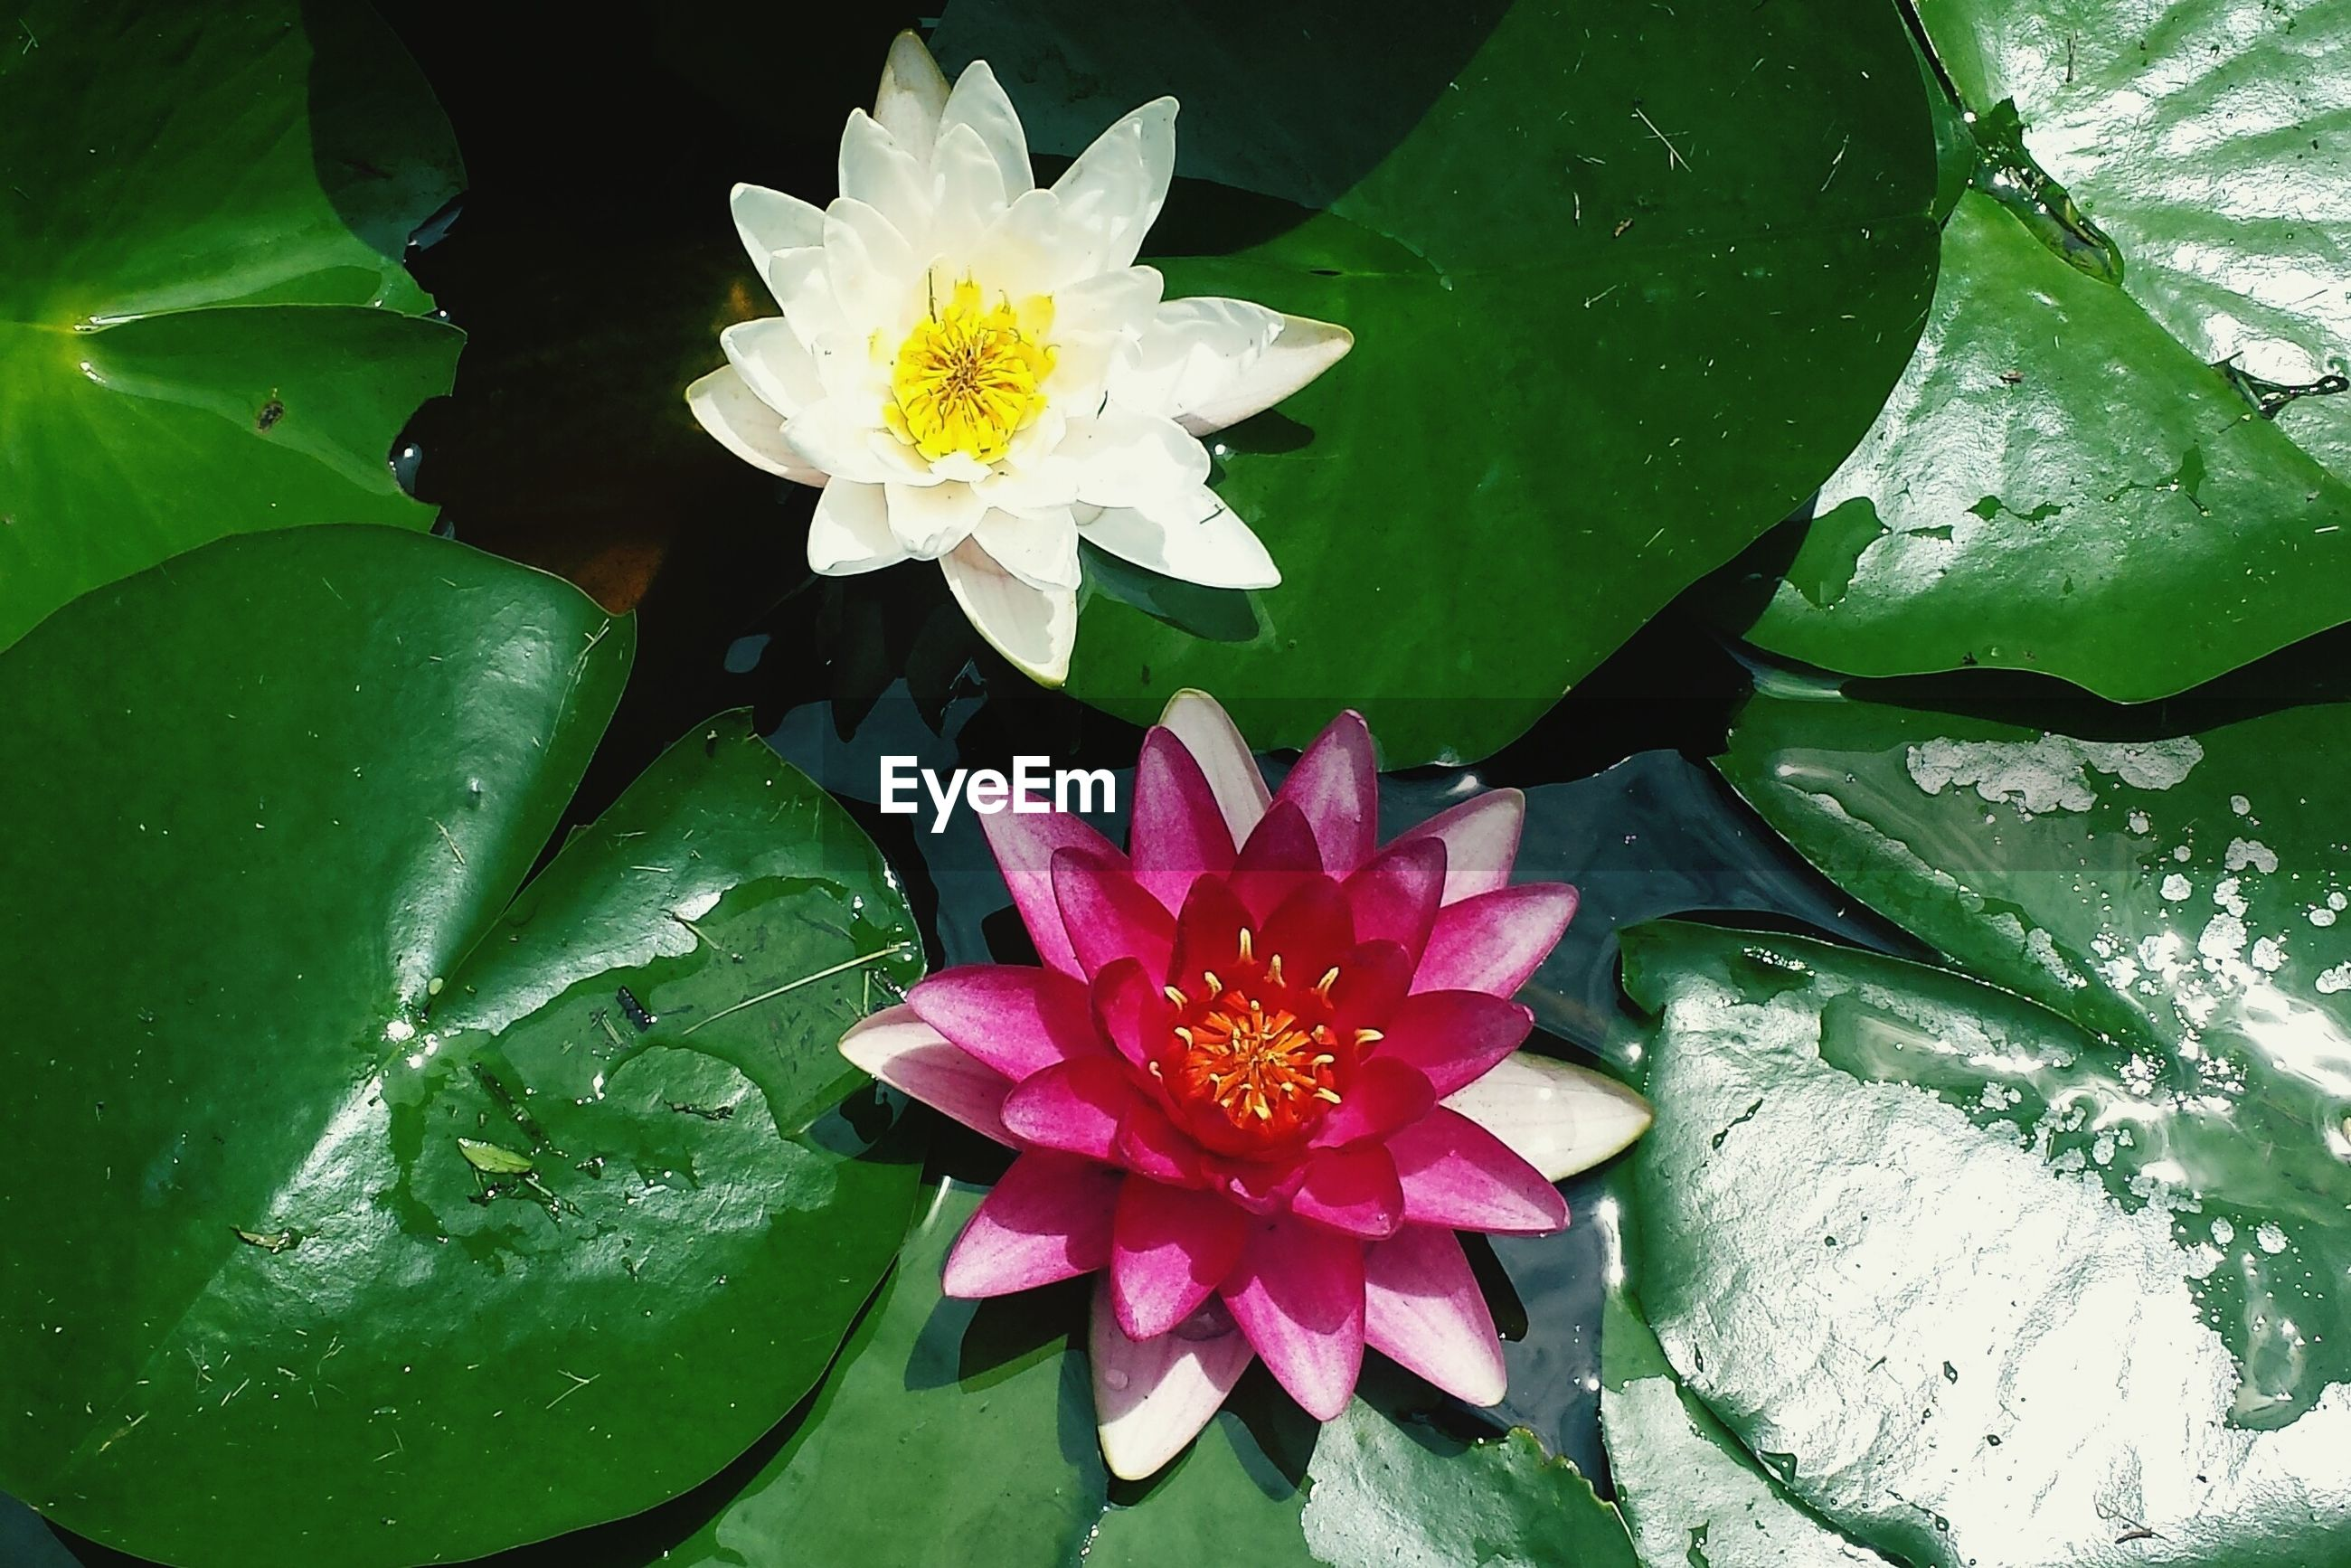 flower, petal, freshness, fragility, flower head, leaf, water lily, growth, water, pond, beauty in nature, blooming, plant, high angle view, floating on water, nature, single flower, close-up, pollen, lotus water lily